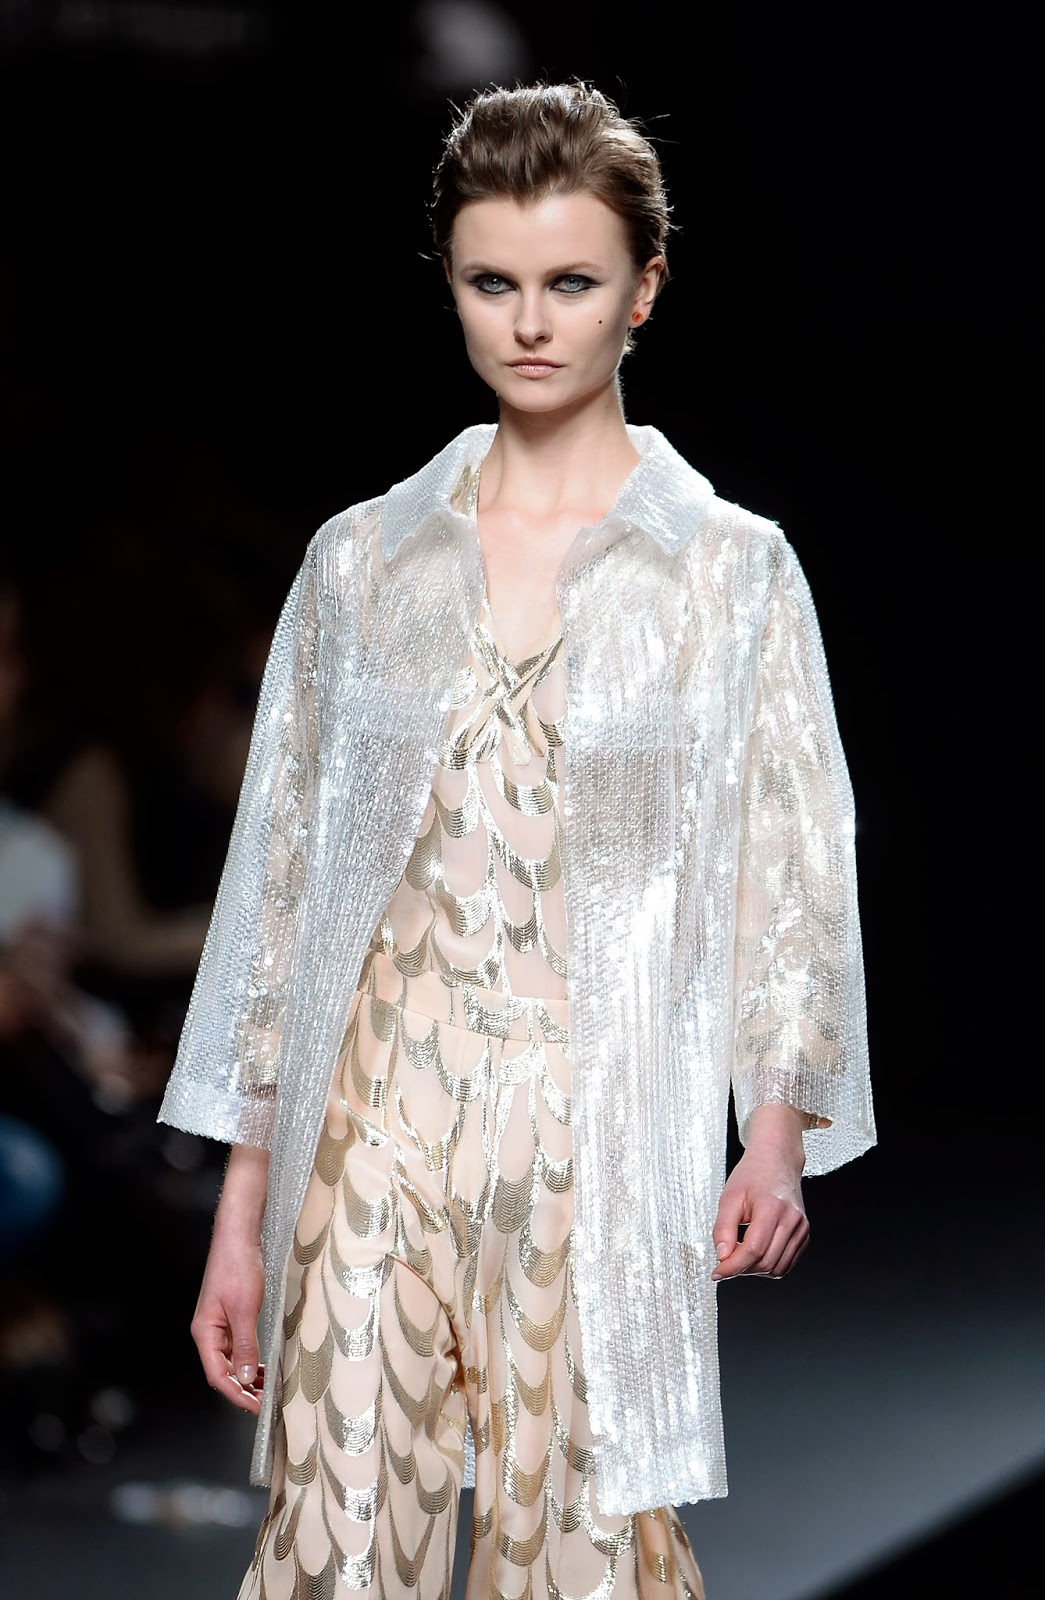 Ailanto, Autumn/Winter 2014-2015, Collection, Creation, Designer, Fashion, Fashion Week, Francis Montesinos, Lucchino, Madrid, Madrid Fashion Week, Showbiz, Victorio,